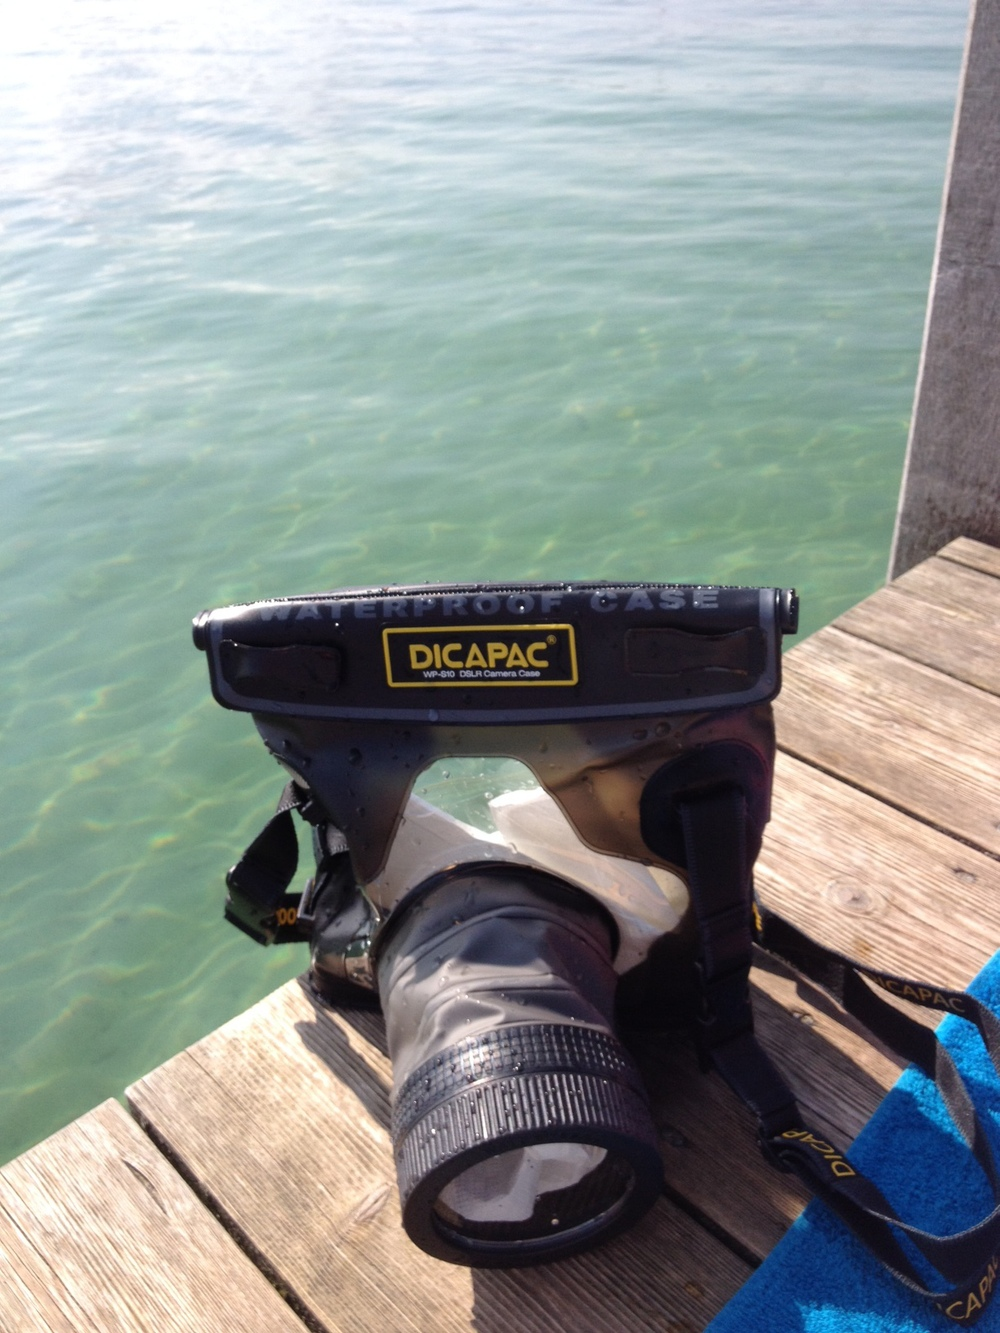 My DiCaPac WP-S10 ready for action :D